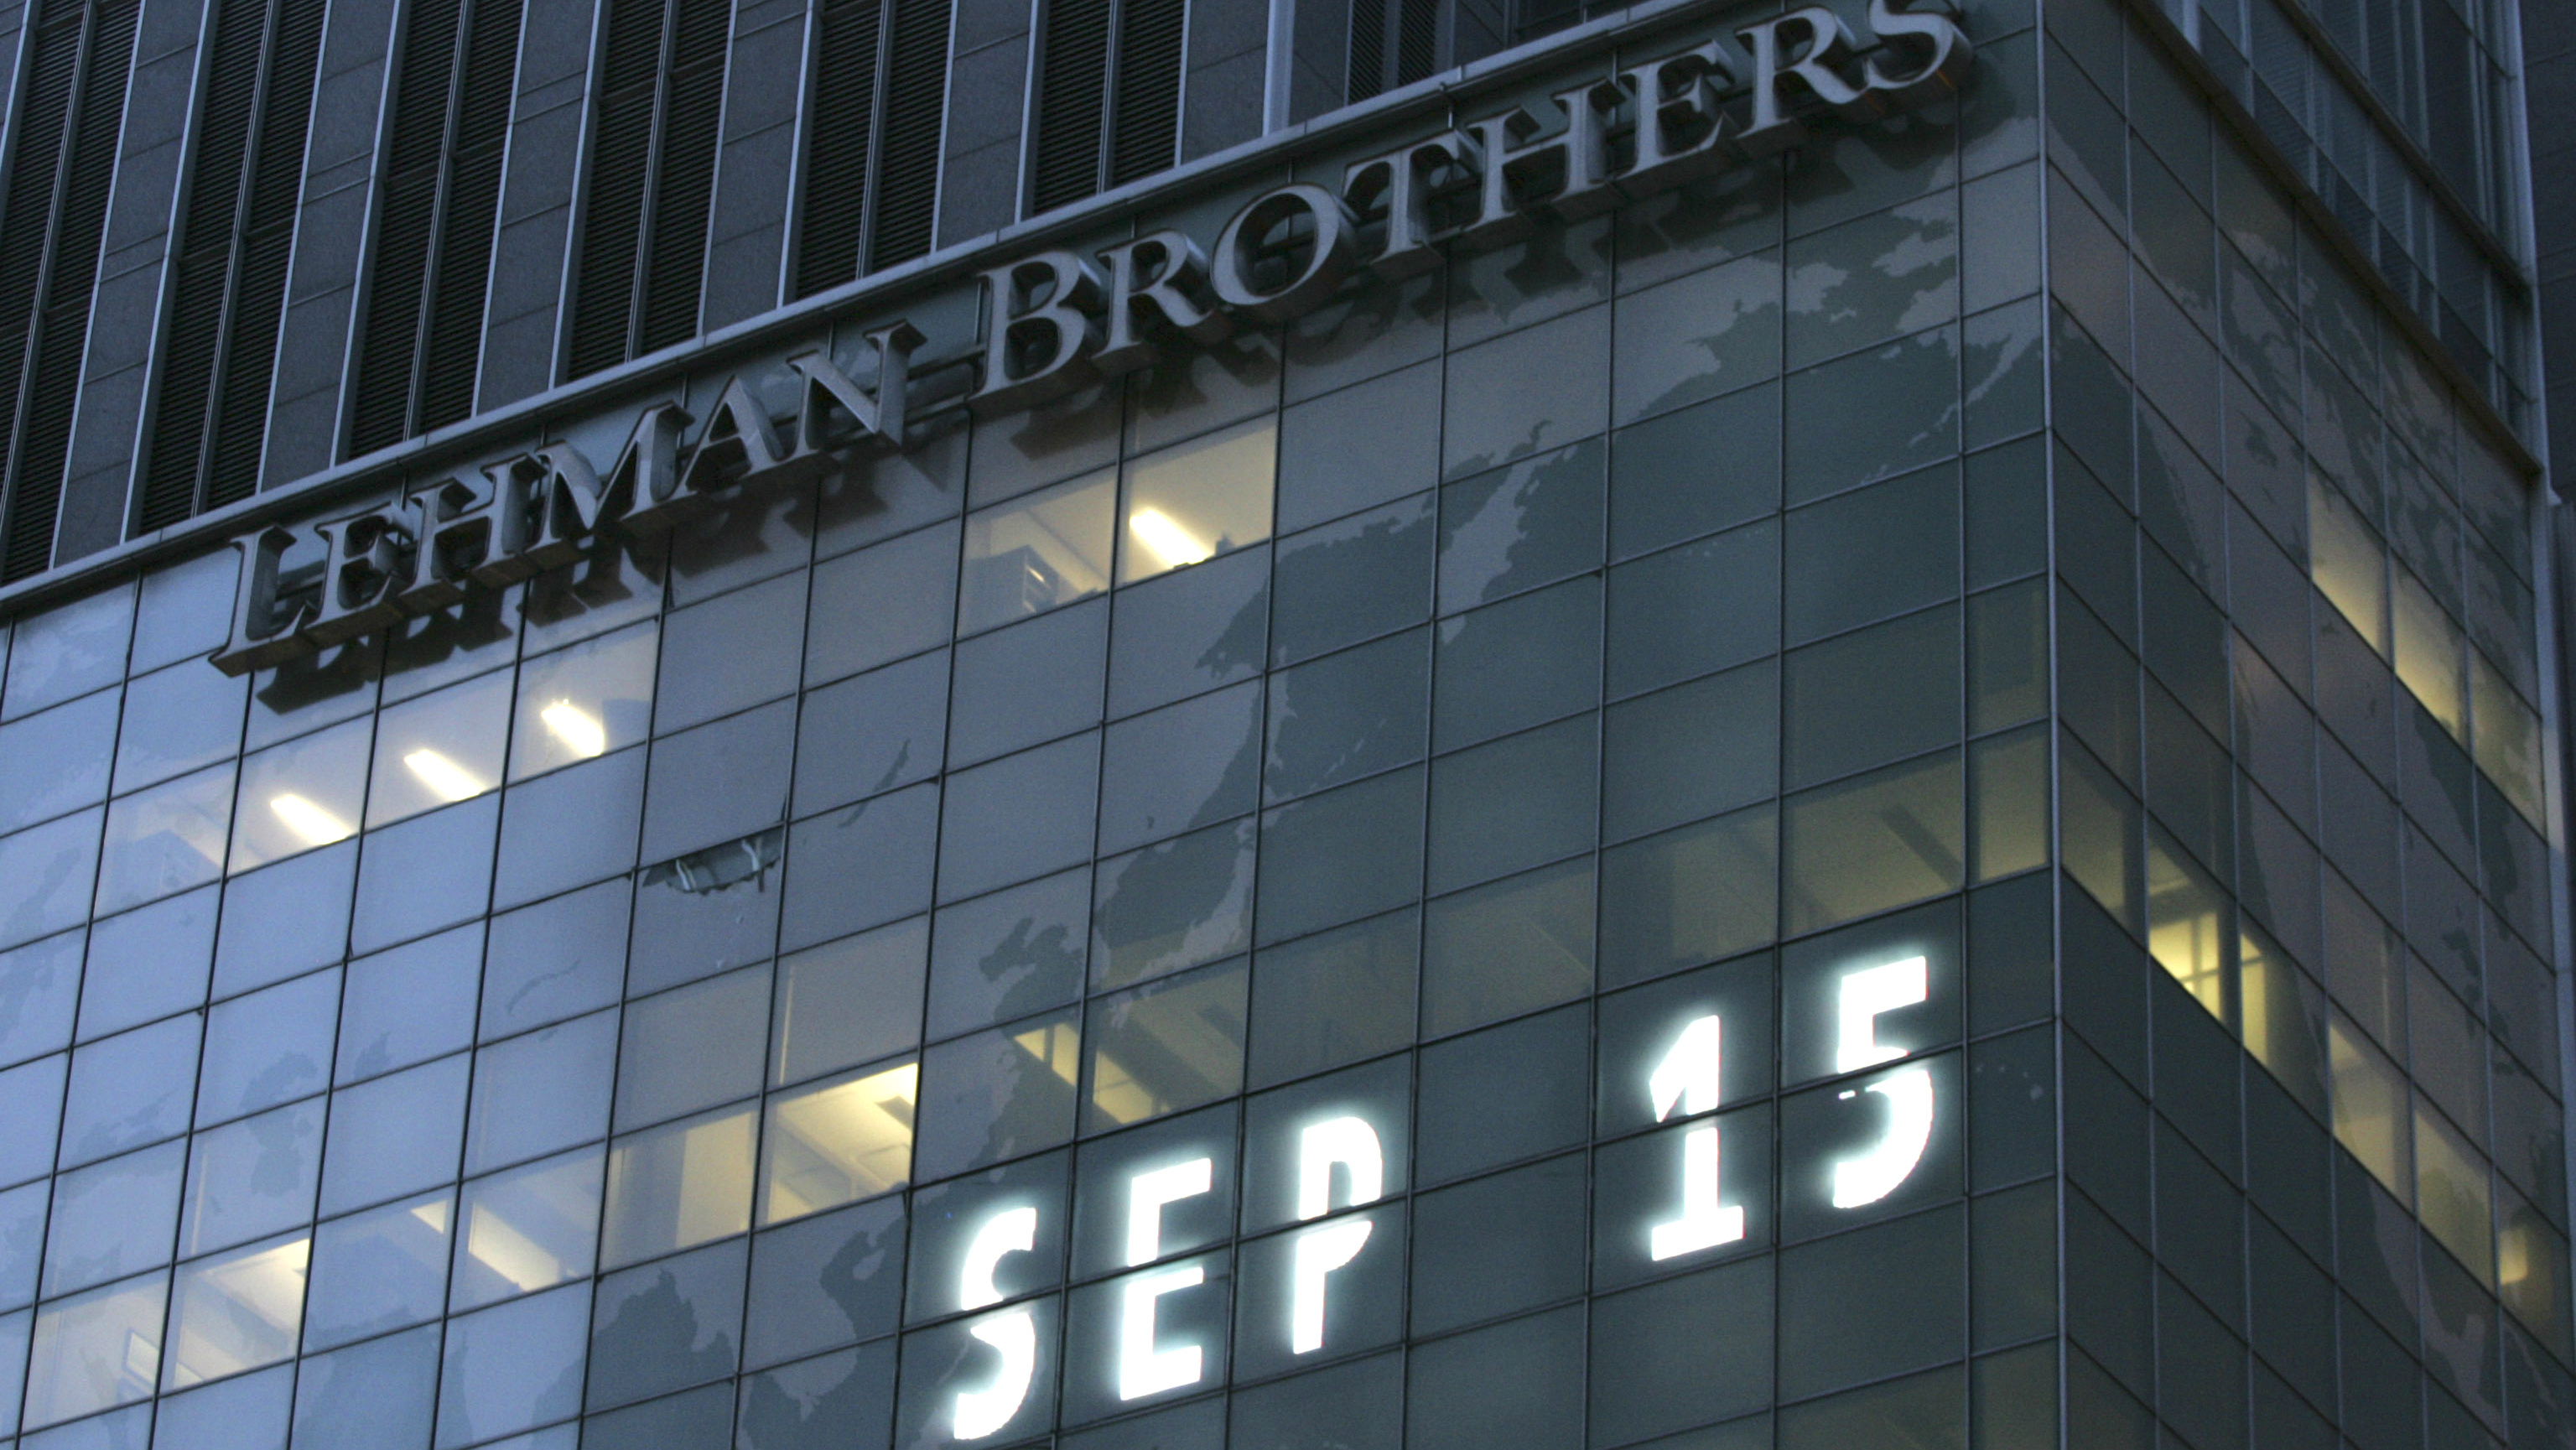 An image of the Lehman Brothers building.